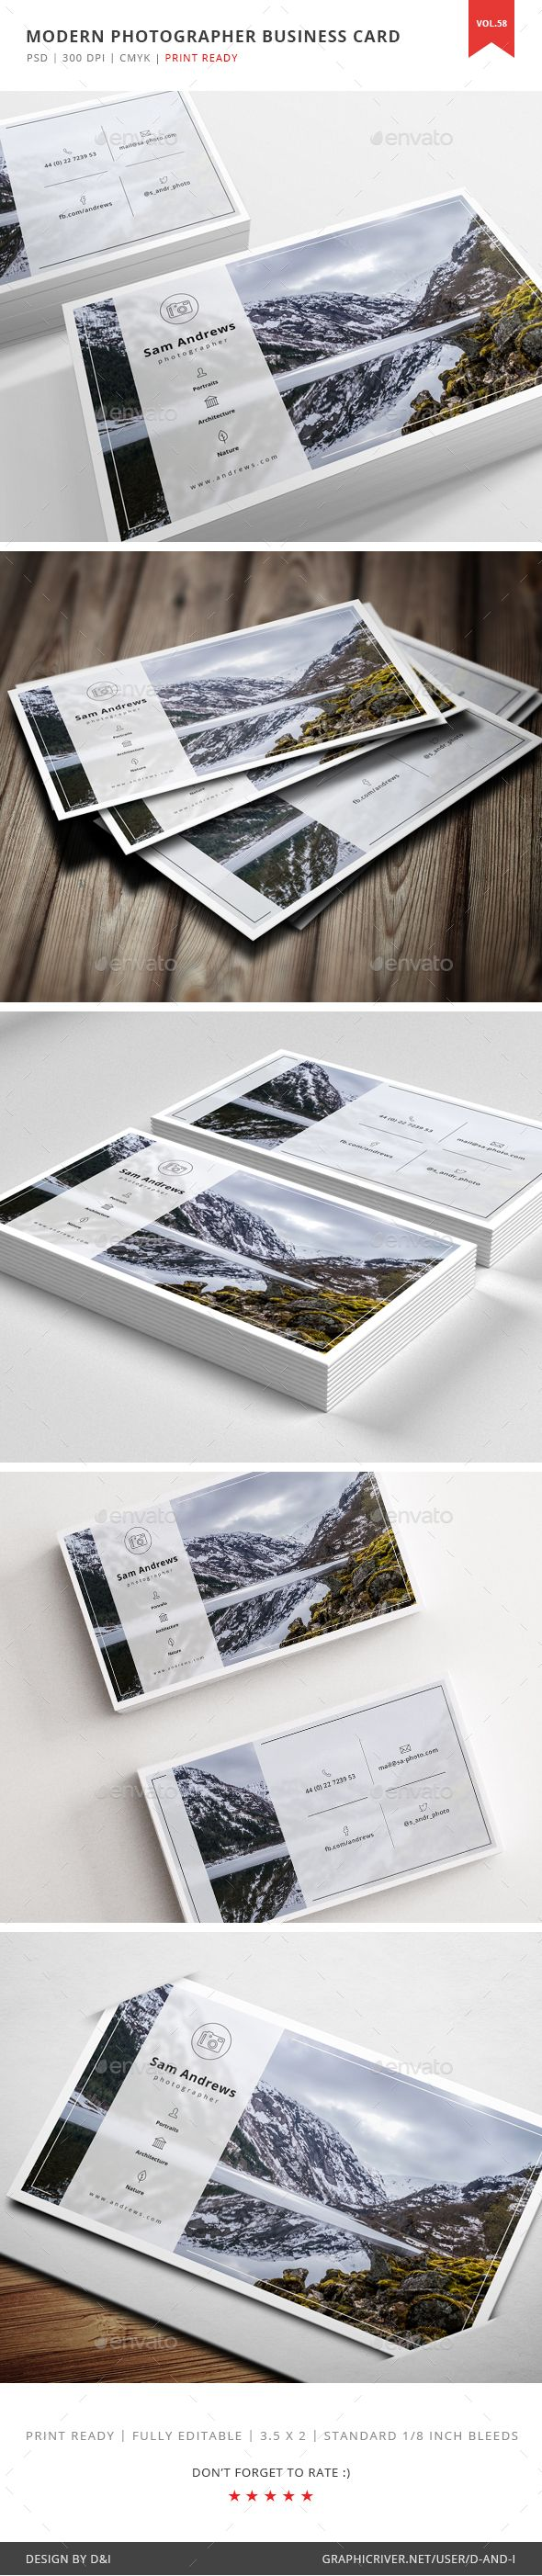 32 best photo images on pinterest business card design graphics modern photographer business card vol 58 reheart Choice Image